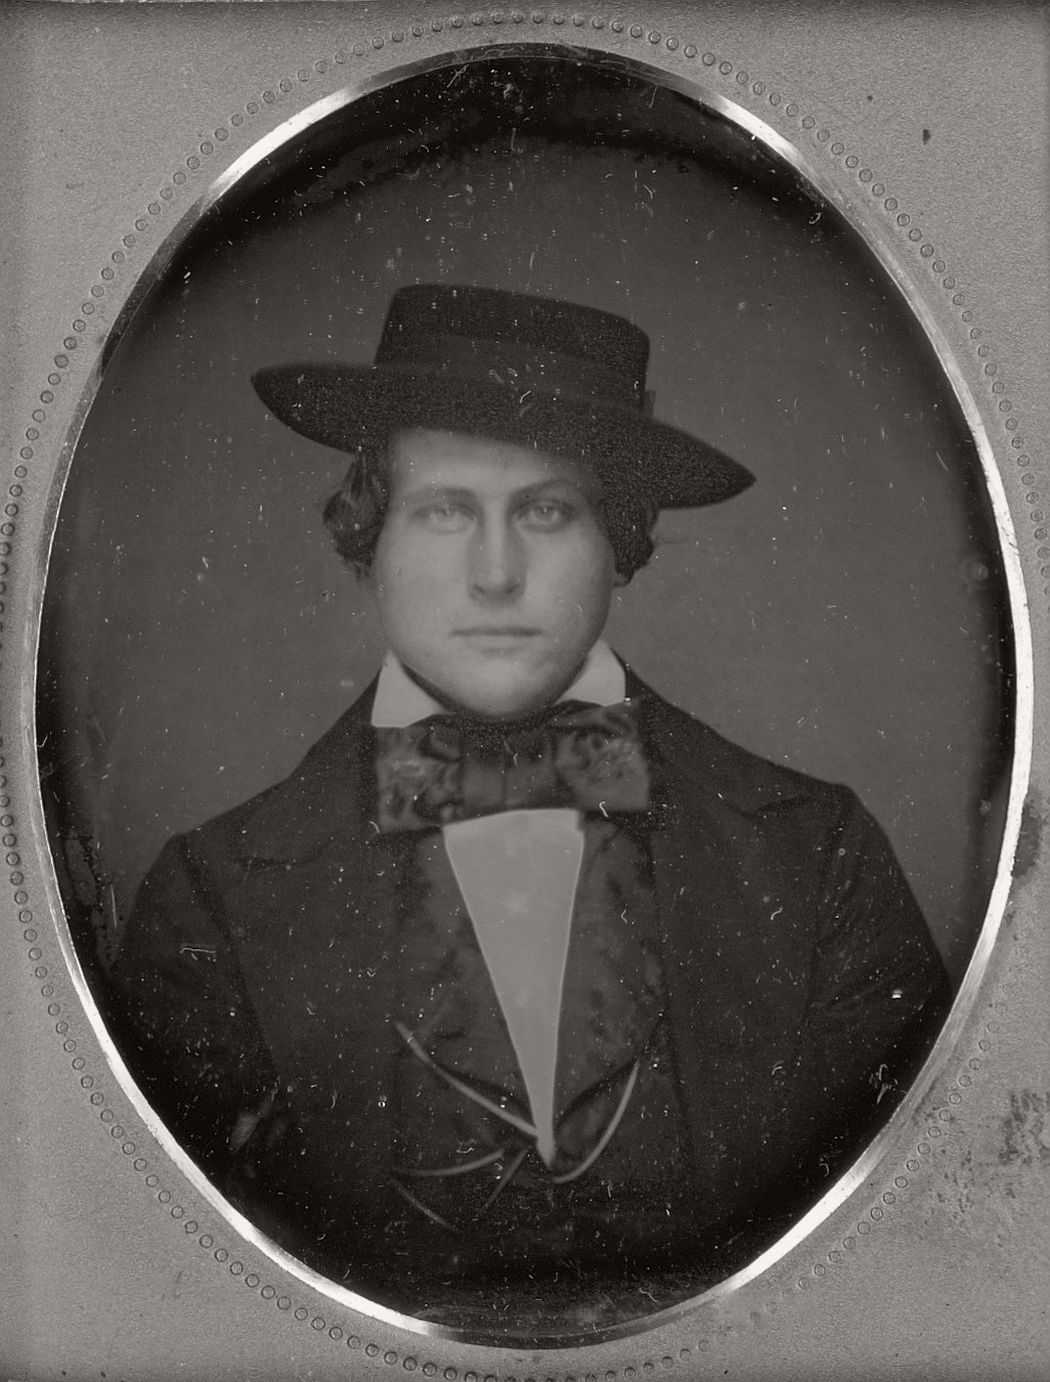 victorian-era-daguerreotype-of-men-in-hat-1850s-xix-century-17